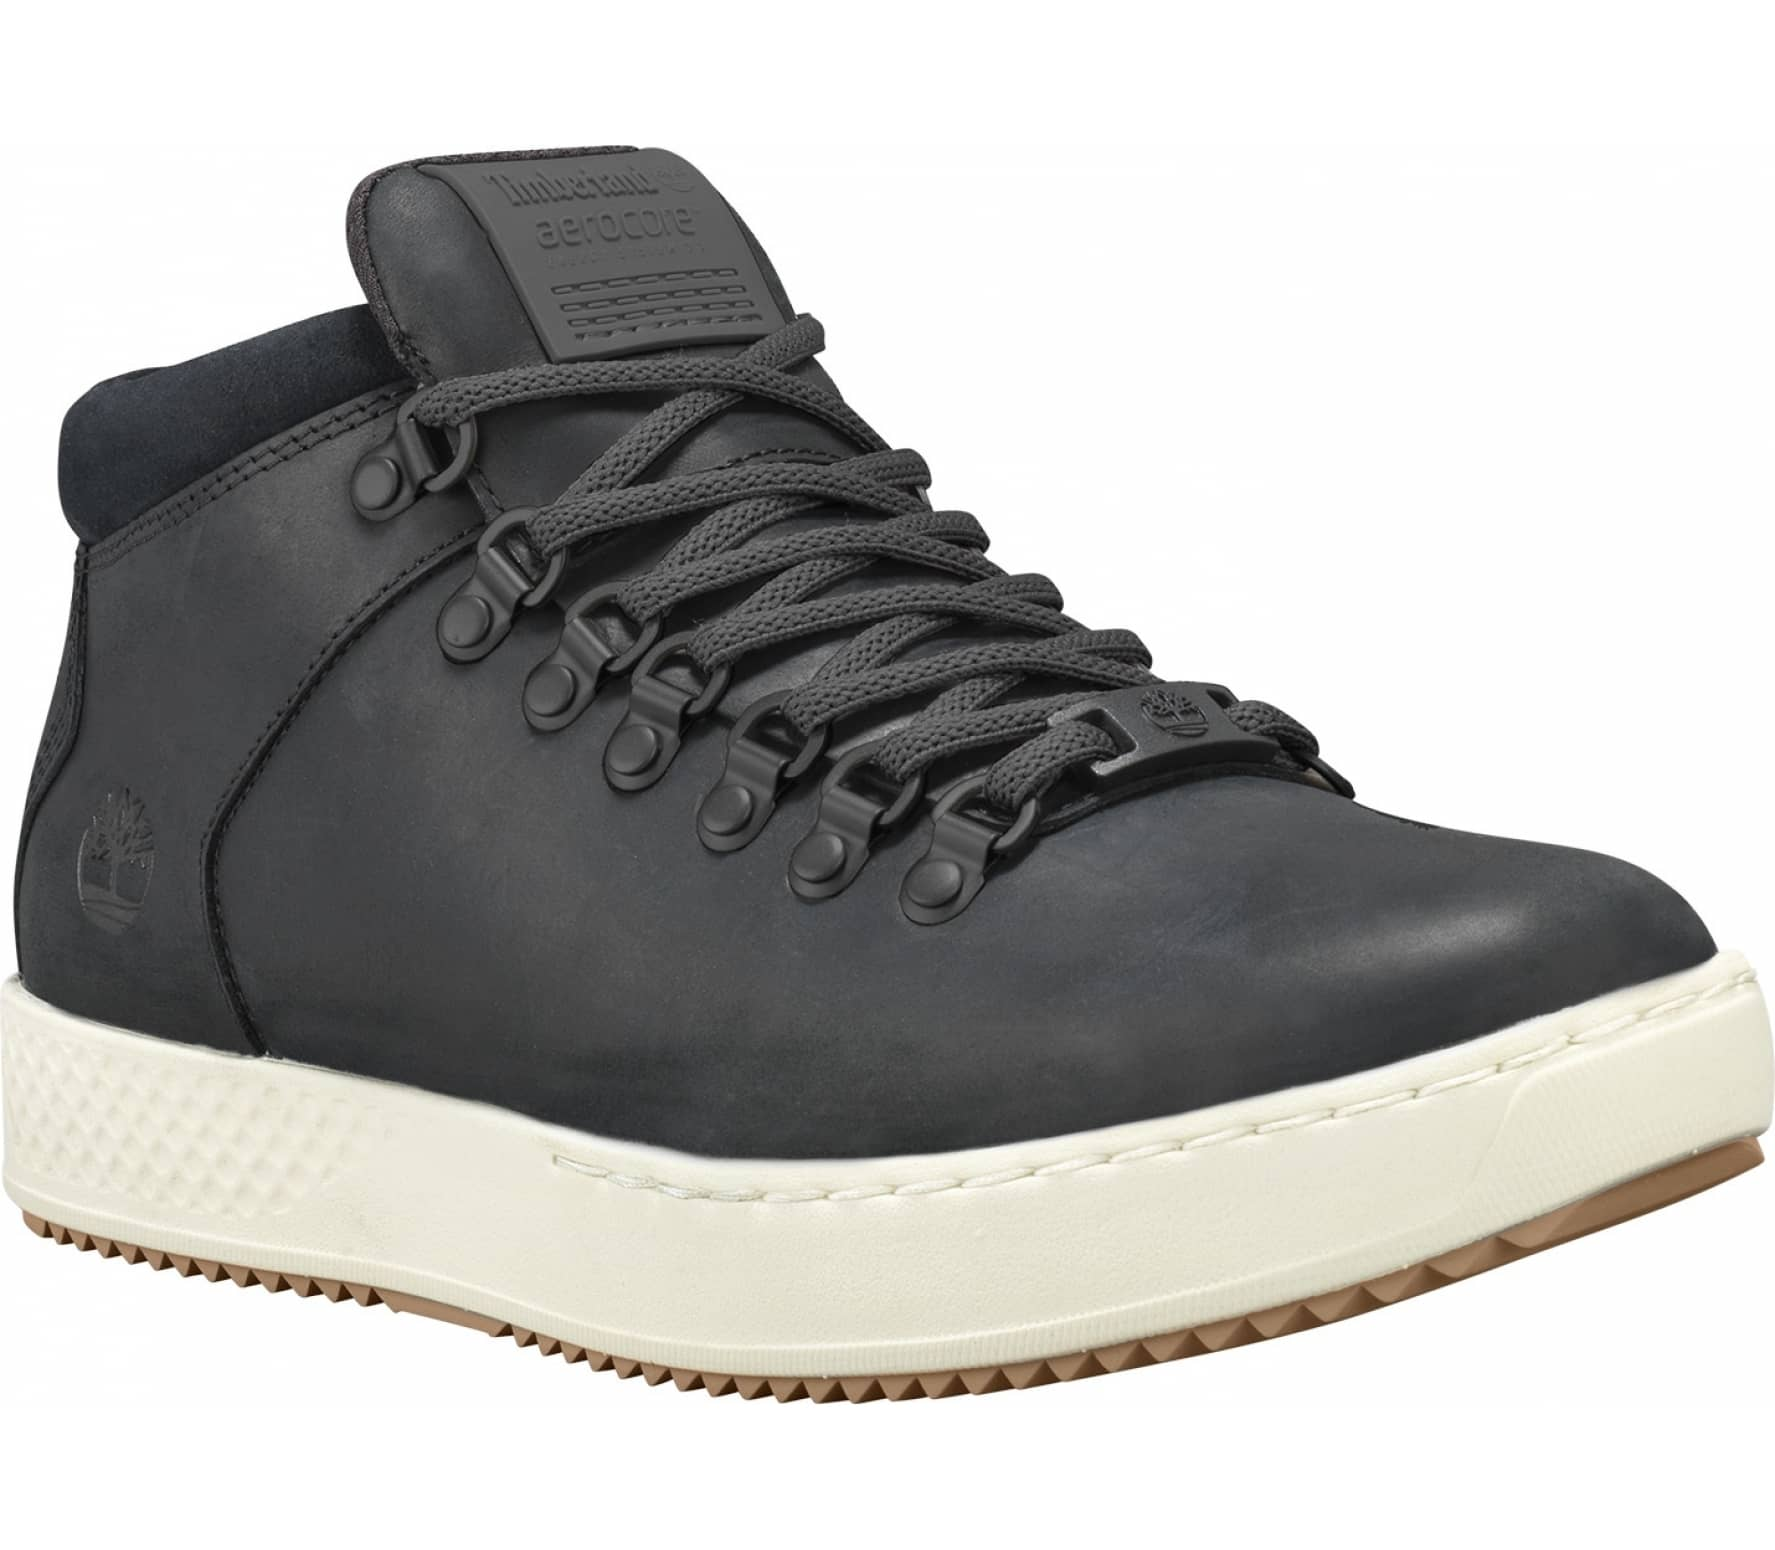 01c7ab9d60c8 Timberland - Cityroam Cupsole Alpine Chukka men s mountain lifestyle shoes (dark  grey white)